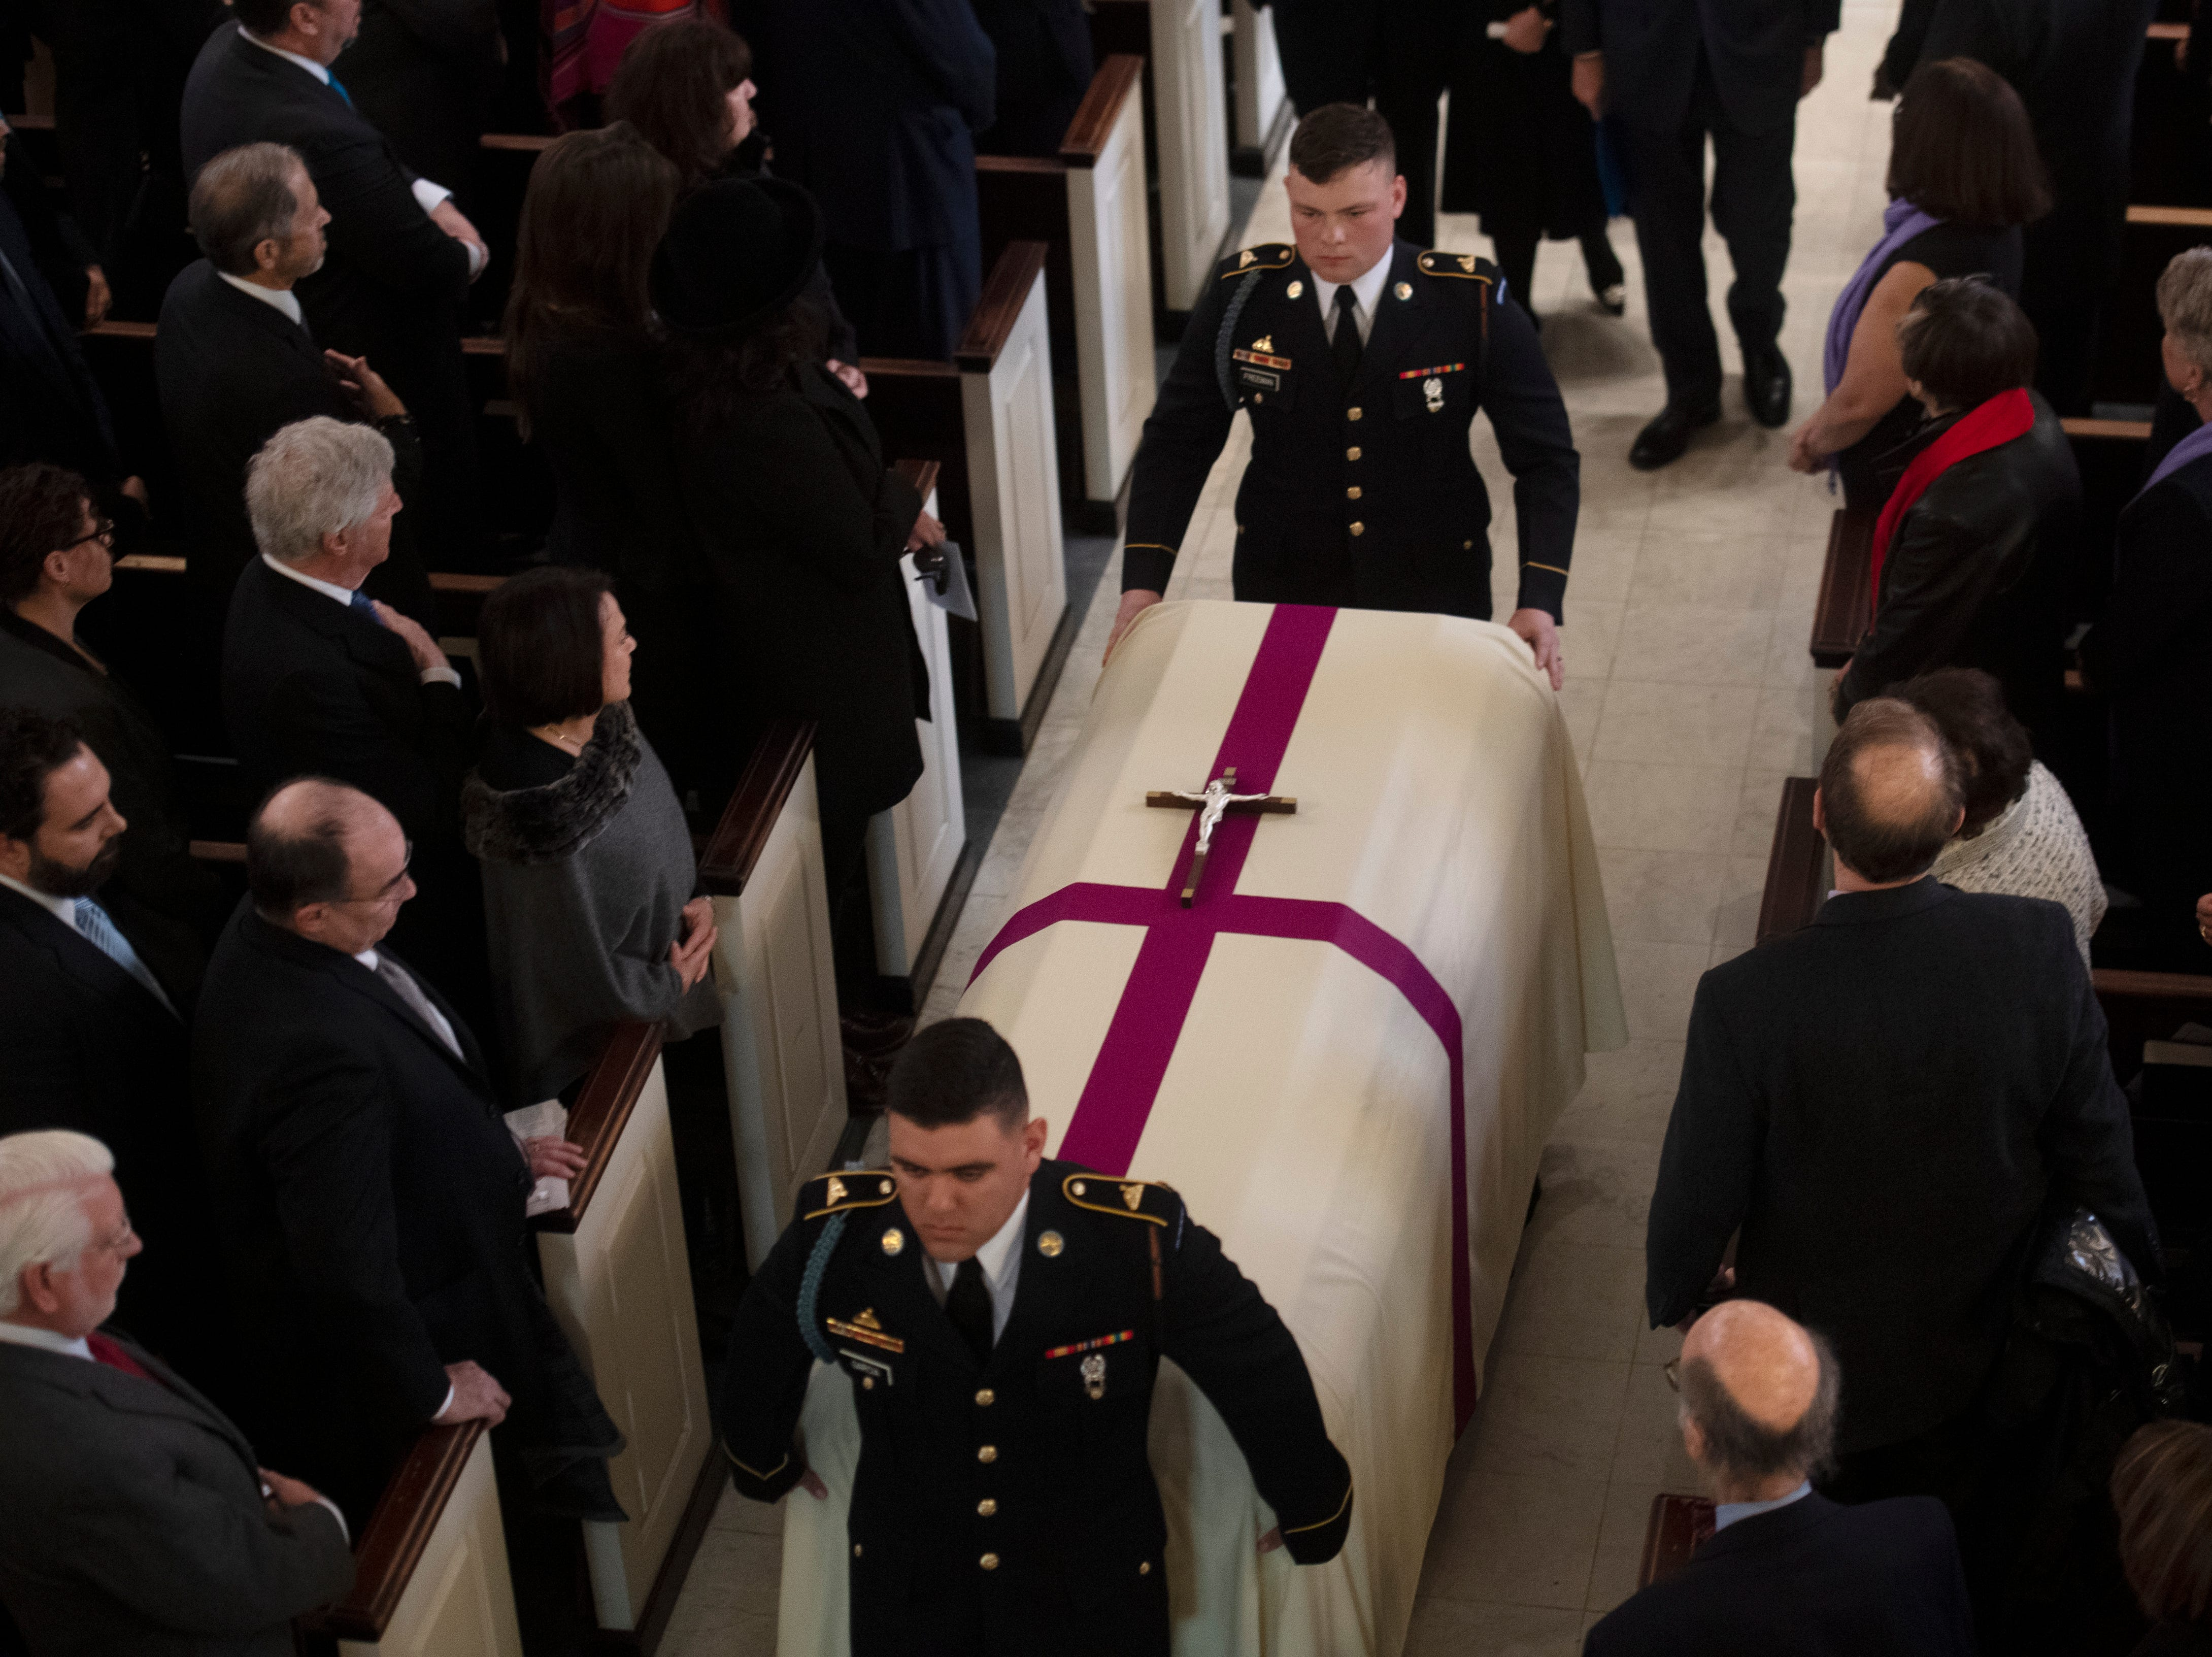 The casket of former Rep. John Dingell, D-Dearborn, departs the church at the conclusion of his funeral.